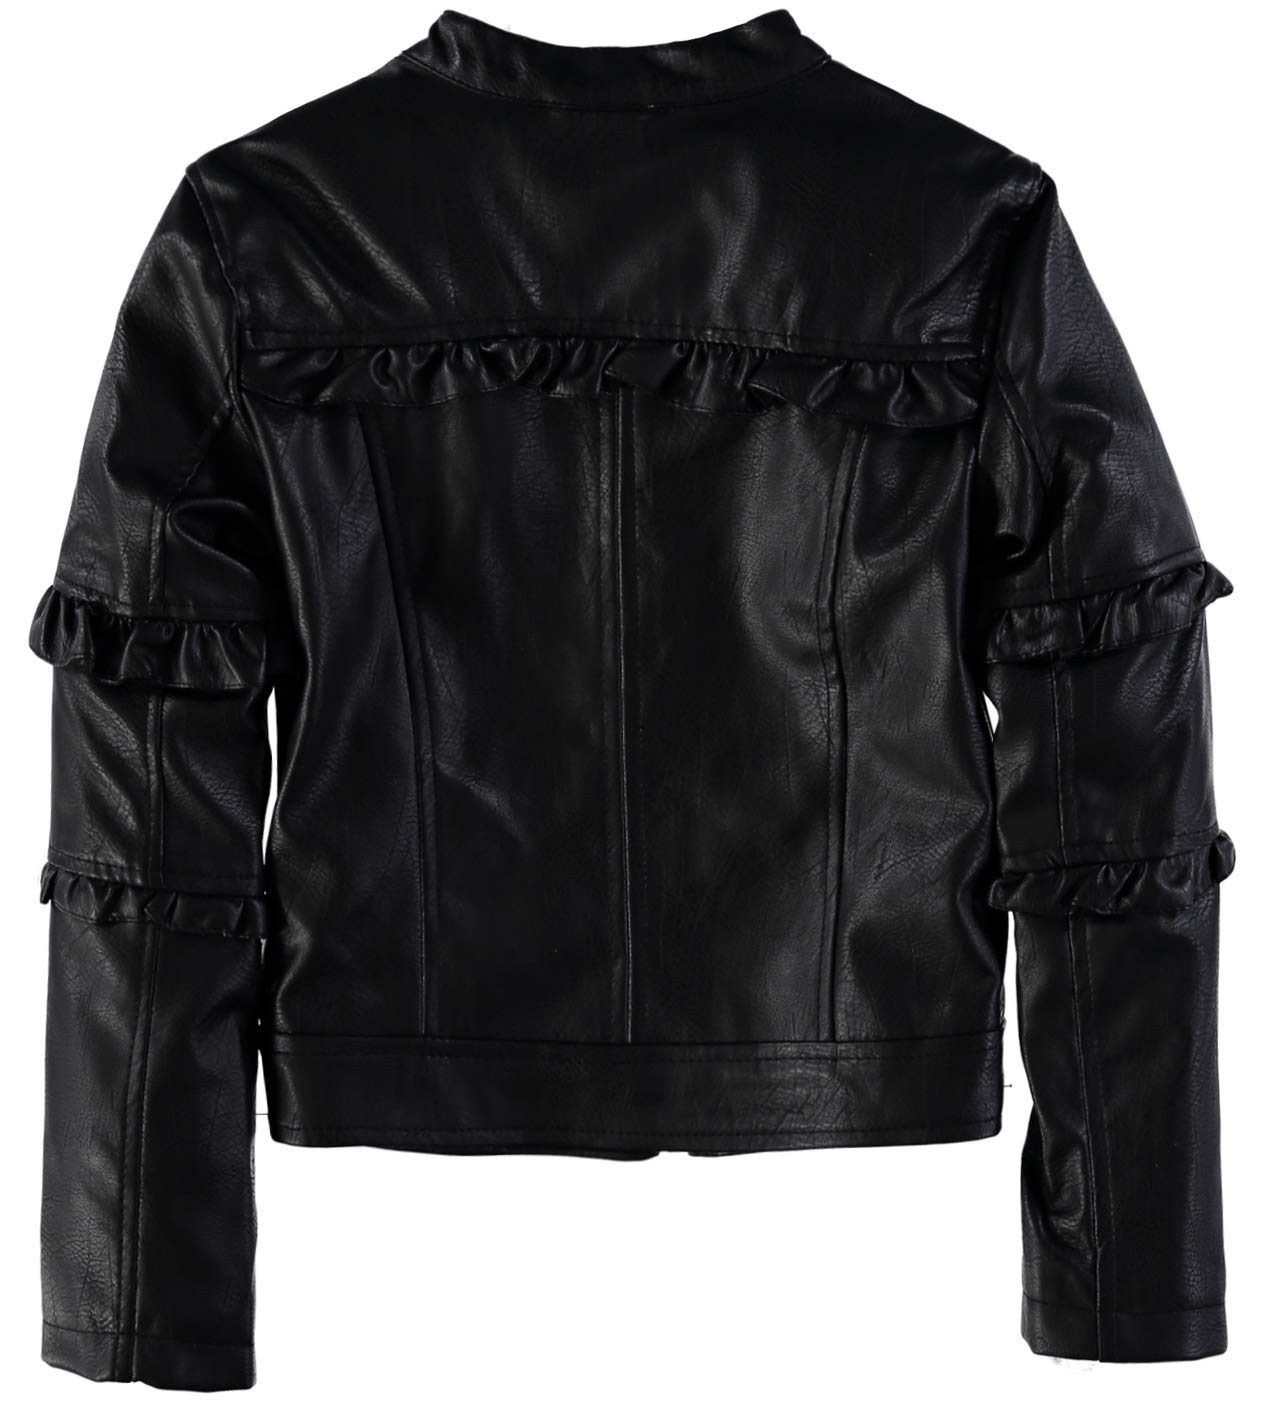 Urban Republic Girls' Faux Leather Ruffle Moto Jacket (Black, 7/8) by Urban Republic (Image #2)